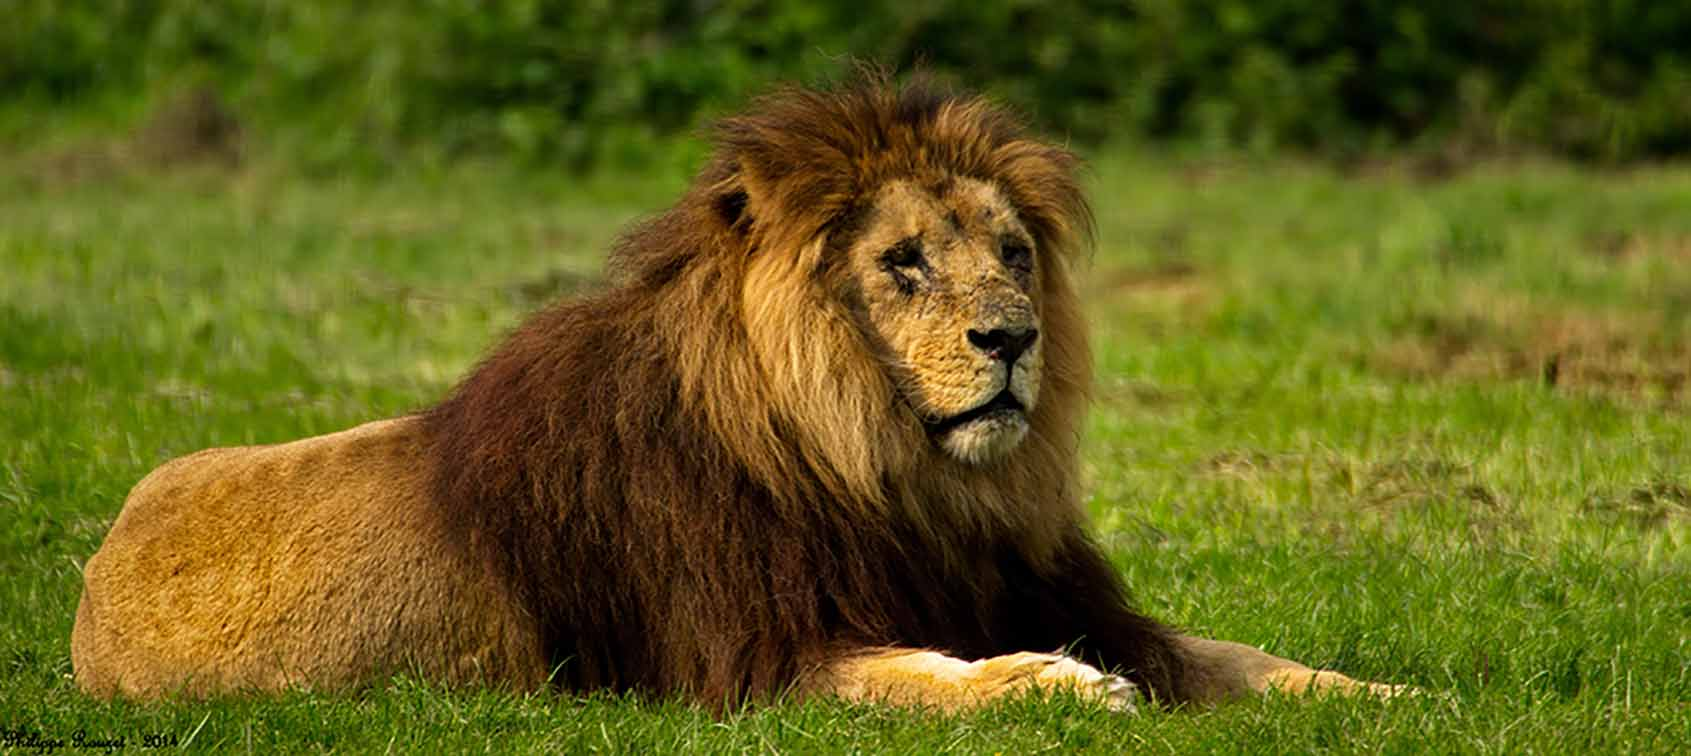 Photograph of a male lion lying on green grass